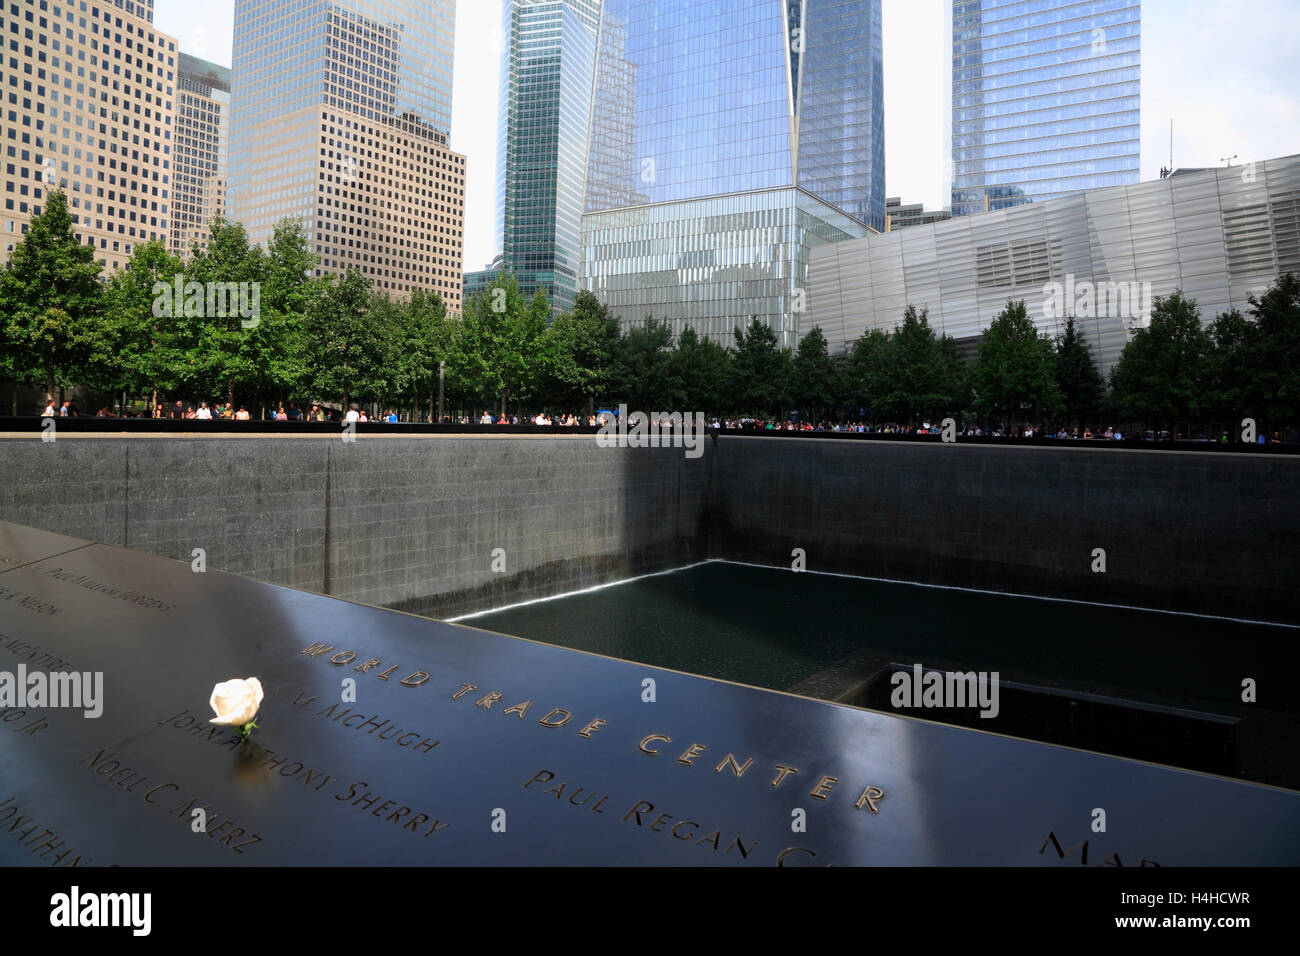 9/11 Memorial Pool, Lower Manhattan, New York, USA Stockbild